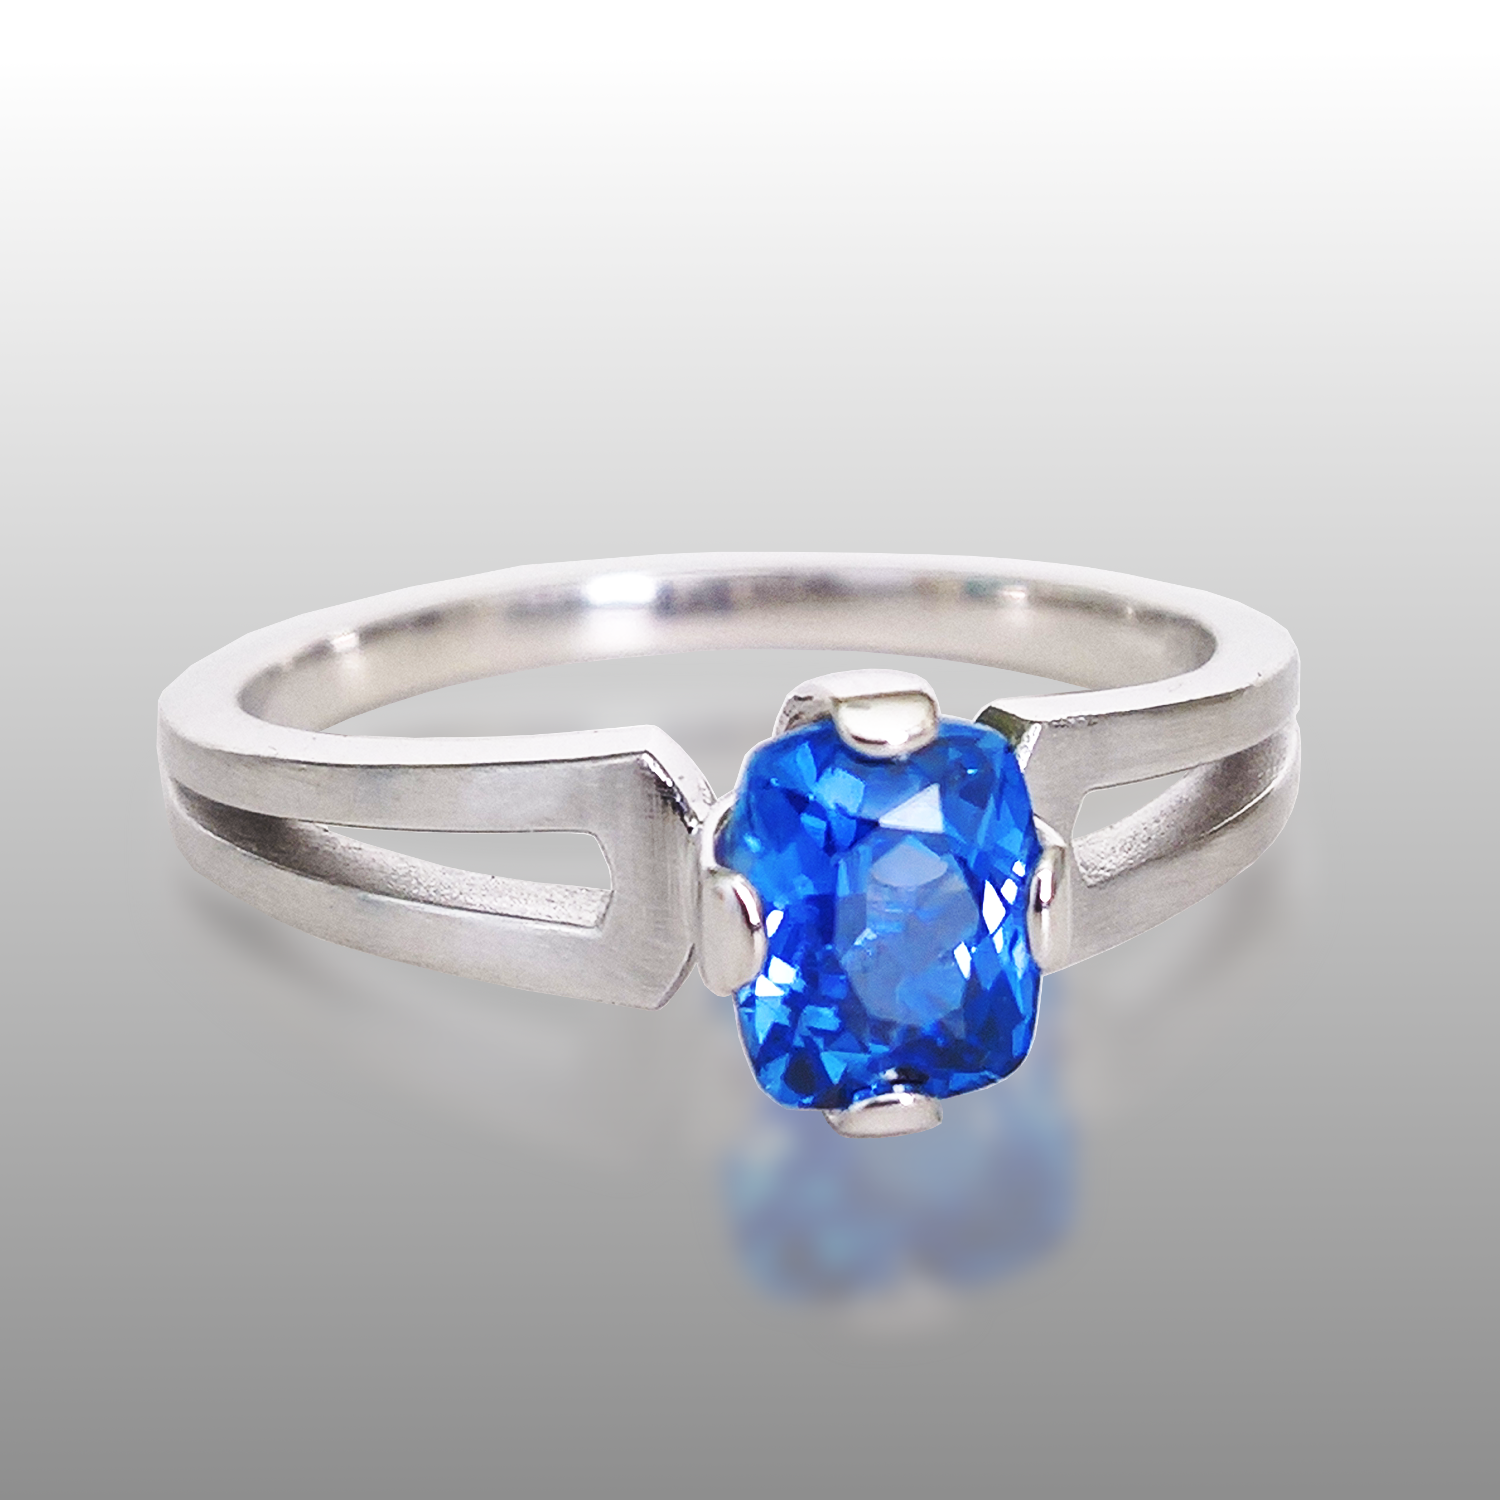 Cushion Cut Blue Sapphire Engagement Ring 'TWIN' in 18k White Gold by Pratima Design Fine Art Jewelry Maui